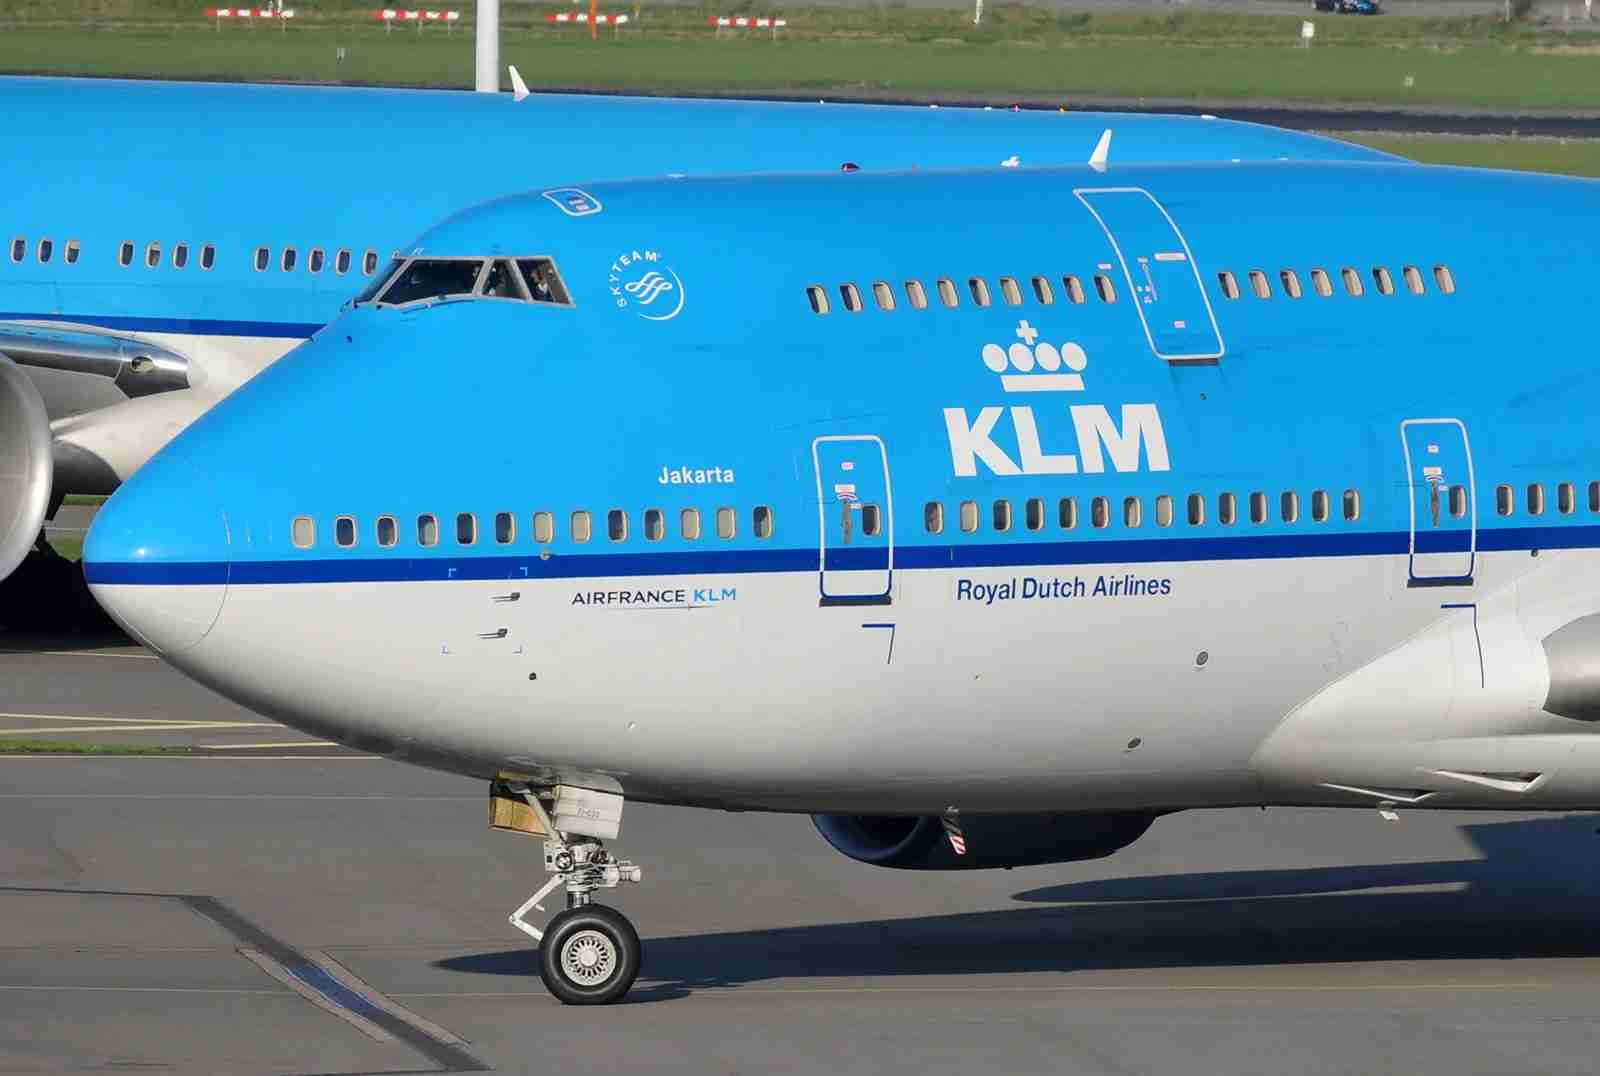 KLM names its 747s after cities in its long-haul network, like Jakarta (Photo by Alberto Riva/TPG)